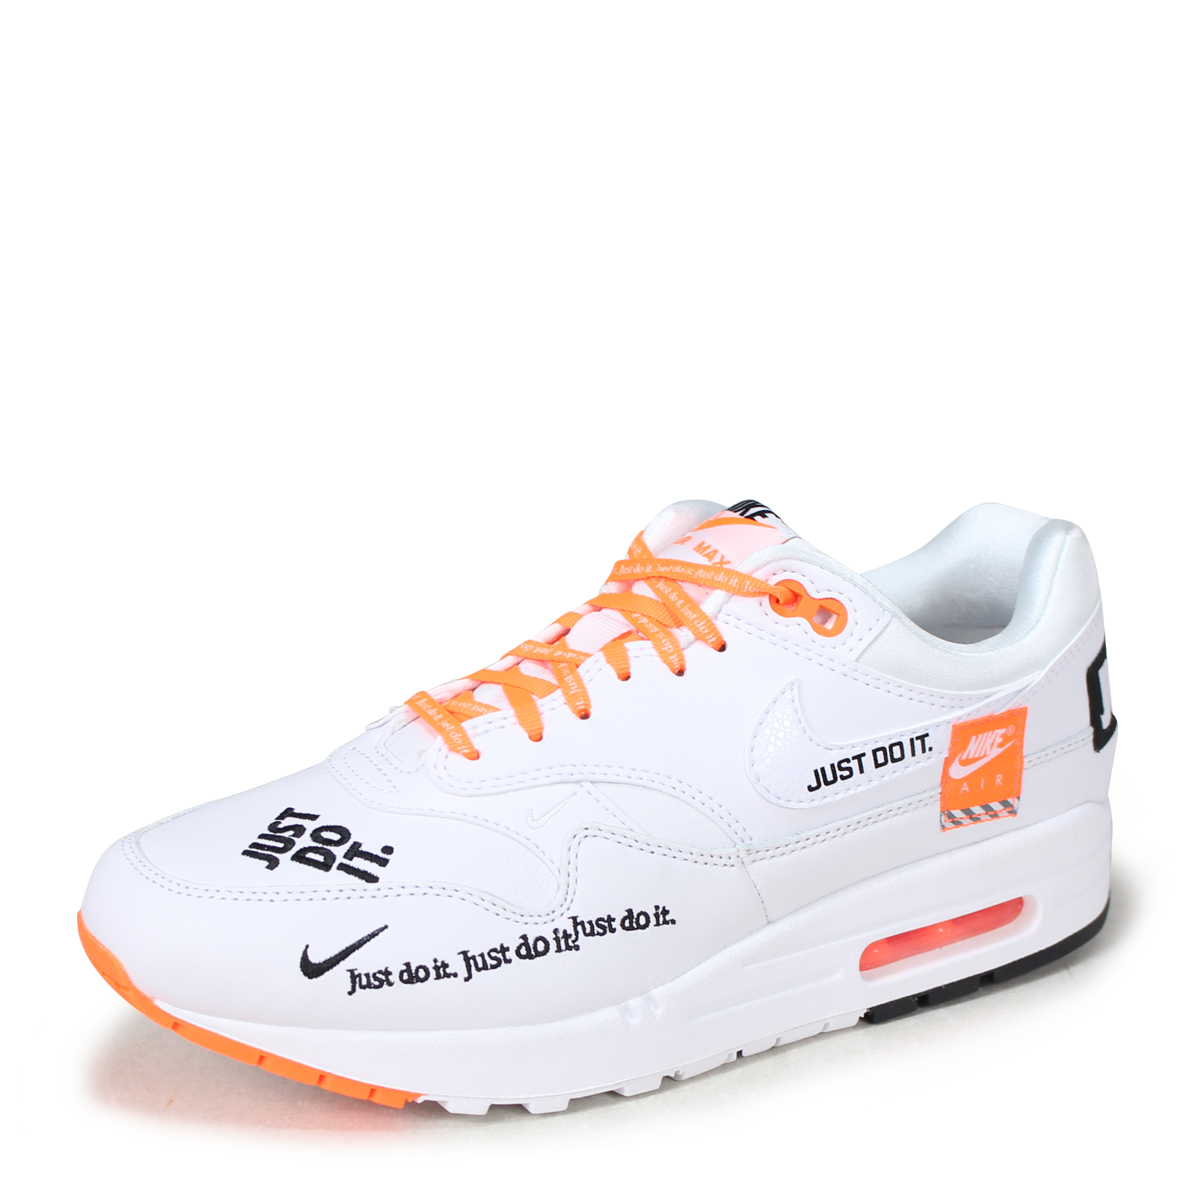 NIKE WMNS AIR MAX 1 LX Kie Ney AMAX 1 lady's men's sneakers 917,691 100 white [load planned Shinnyu load in reservation product 713 containing] [187]